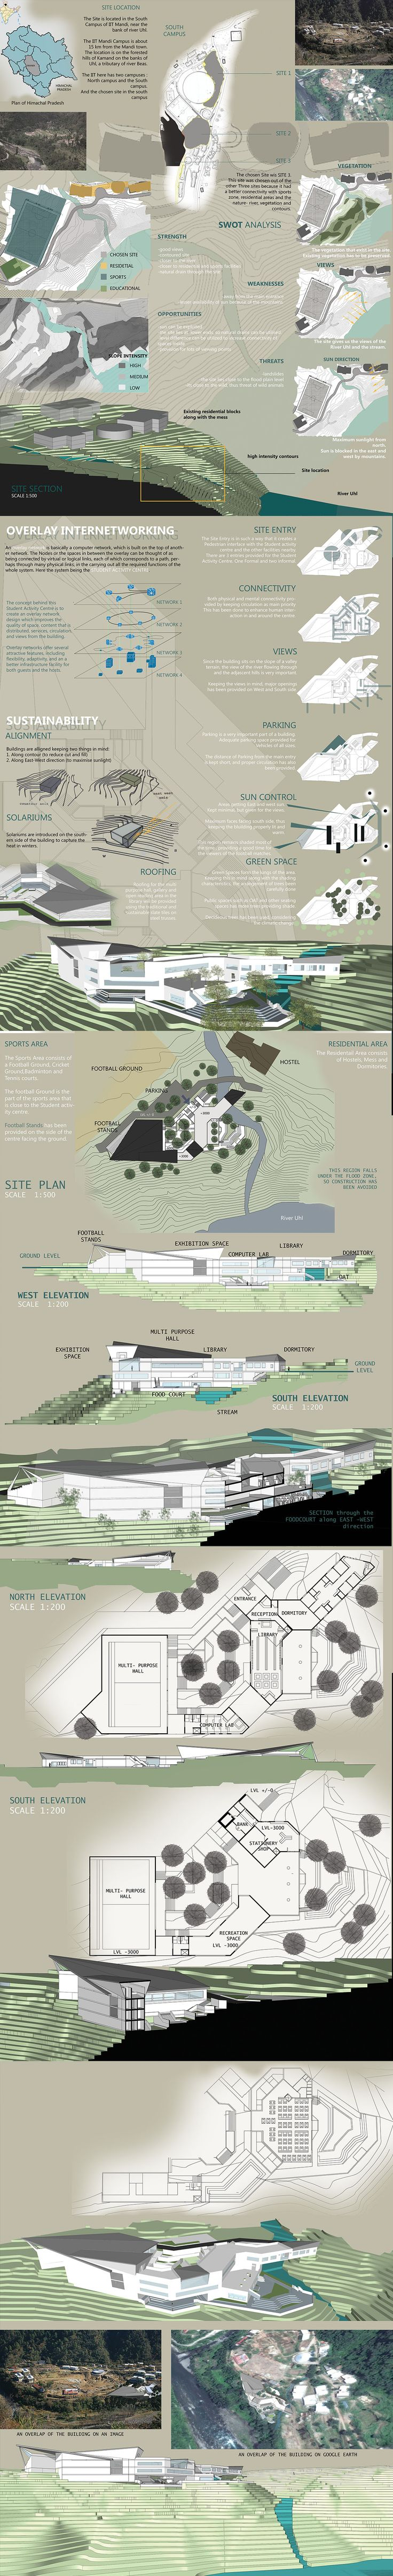 Student Activity Center - IIT Mandi, Sem V A. . Architecture design sheet                                                                                                                                                                                 More